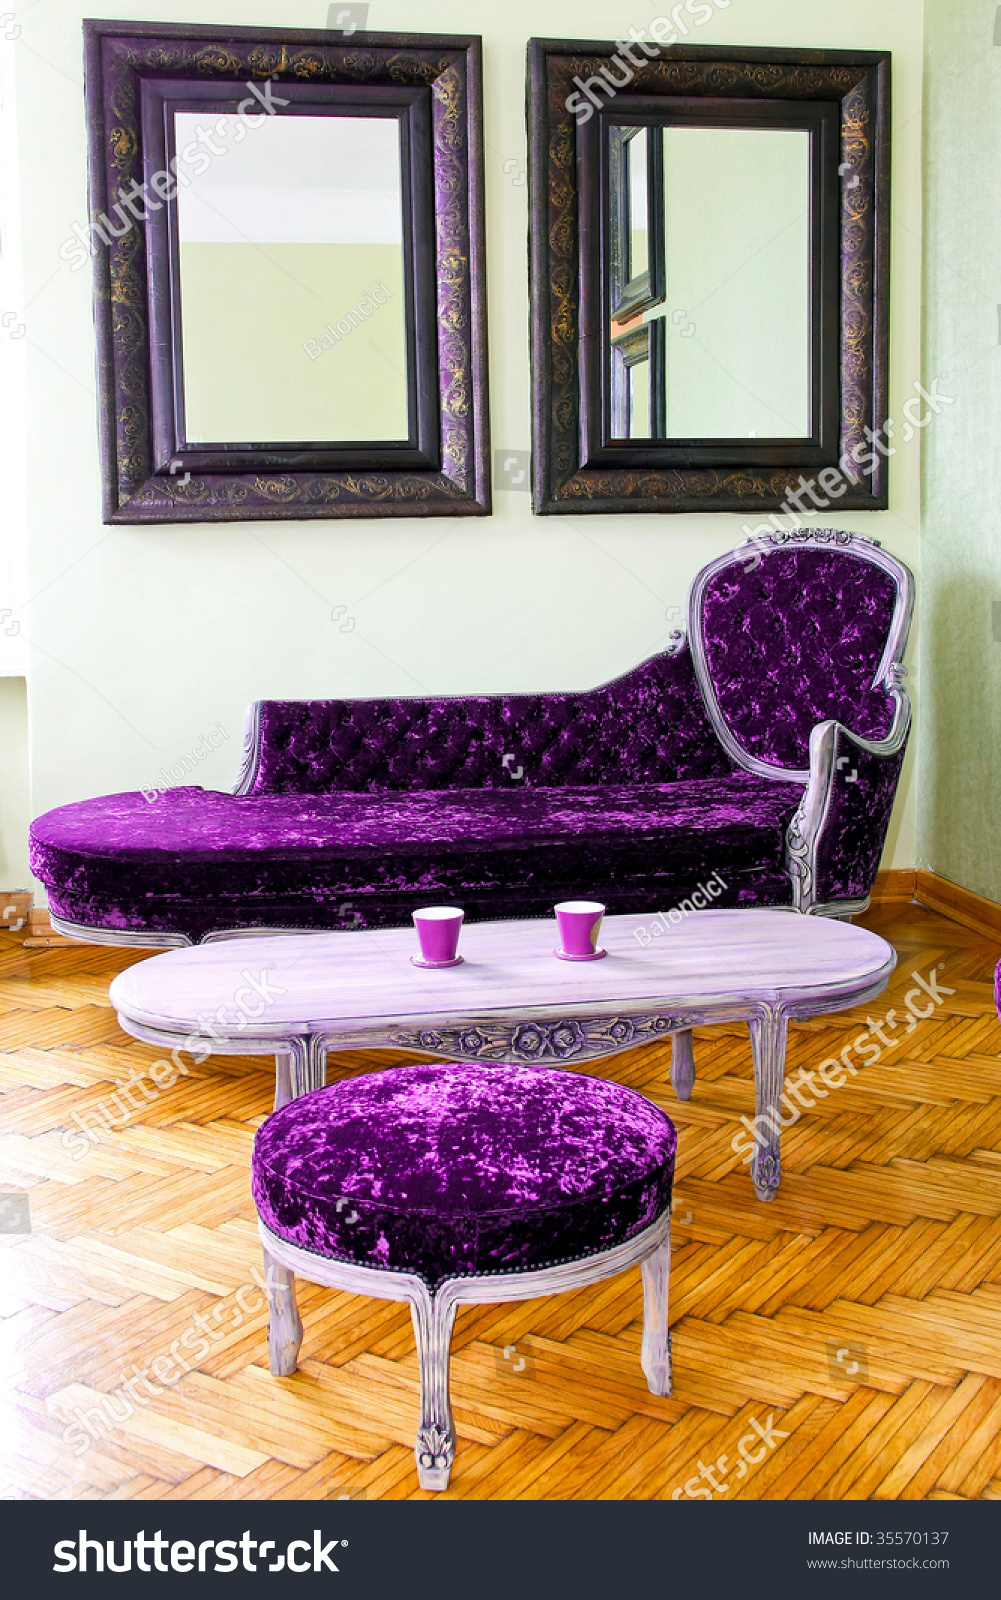 Living Room With Purple Upholstered Furniture Set Stock Photo 35570137 Shutterstock